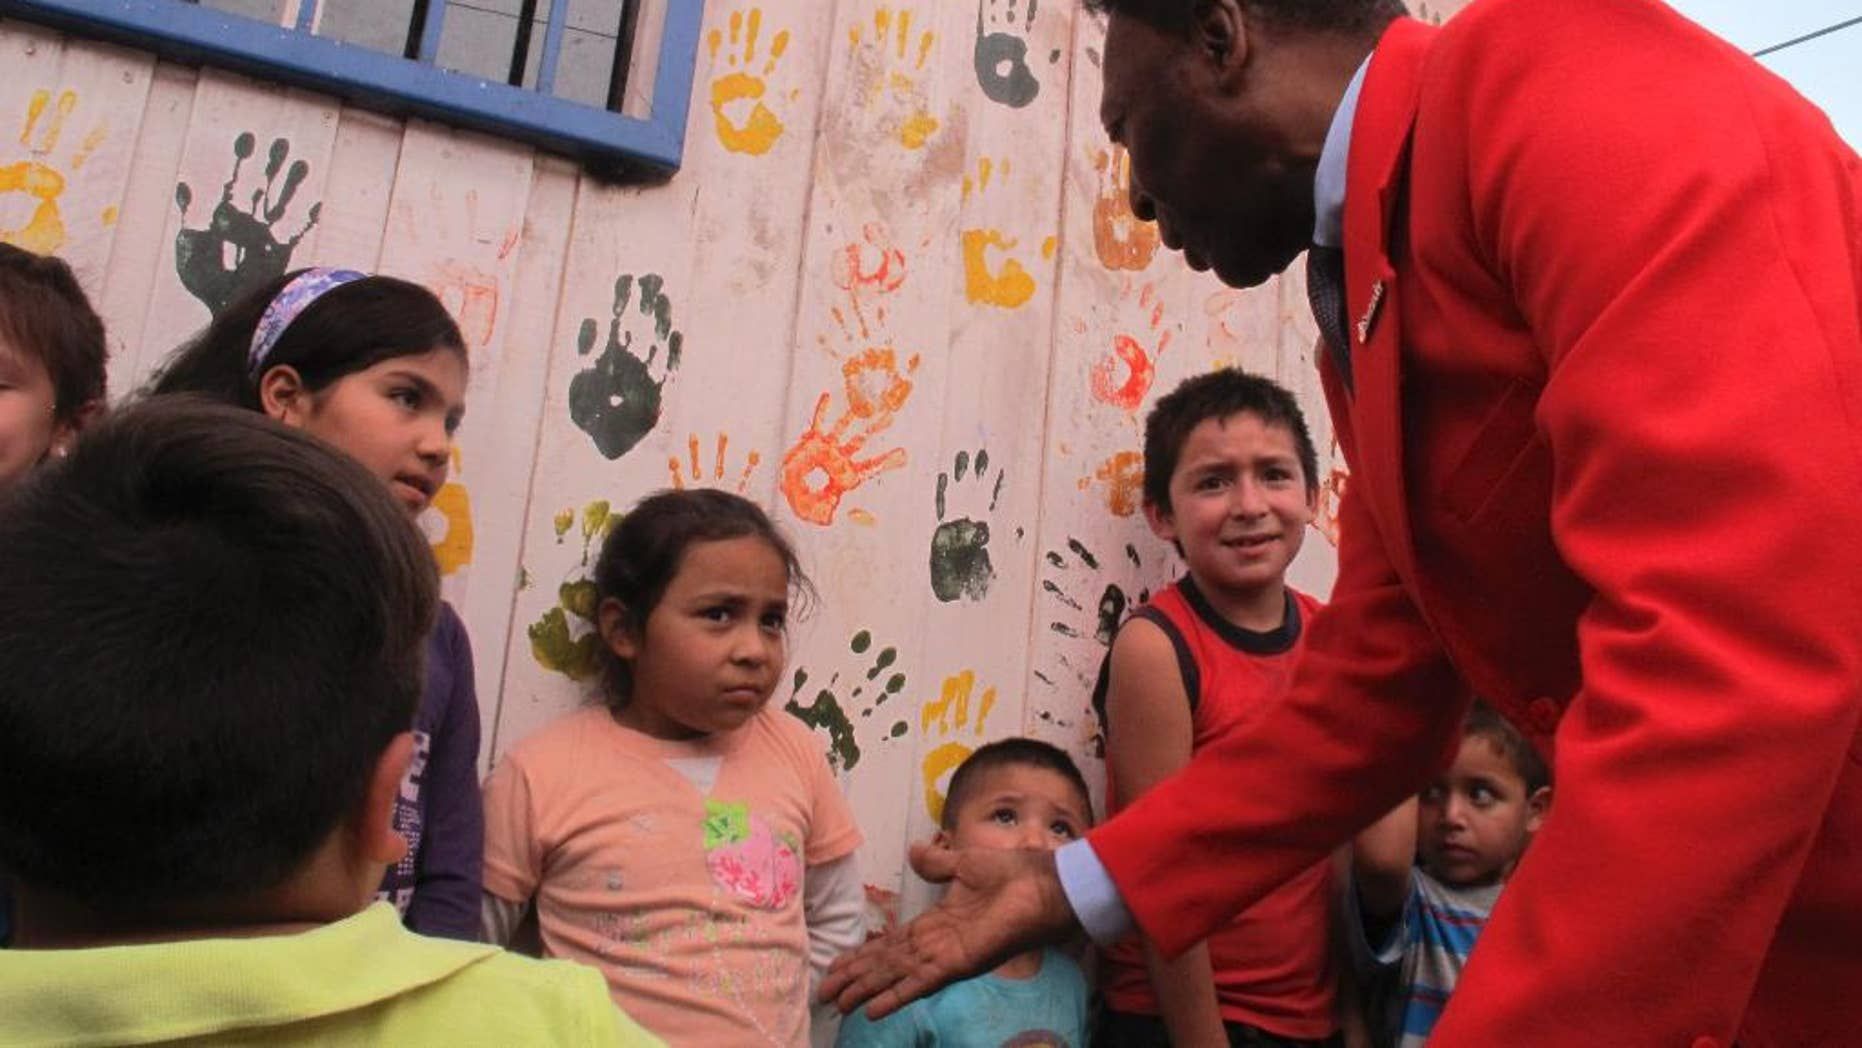 """Brazilian soccer legend Pele puts out his hand, while greeting children in a visit to a slum in Santiago, Chile, Thursday, April 9, 2015. The activity was organized Thursday by a local NGO and a bank, seeking to inspire Chilean children. Pele says he has """"happily recovered"""" from a recent health scare. (AP Photo/Luis Andres Henao)"""